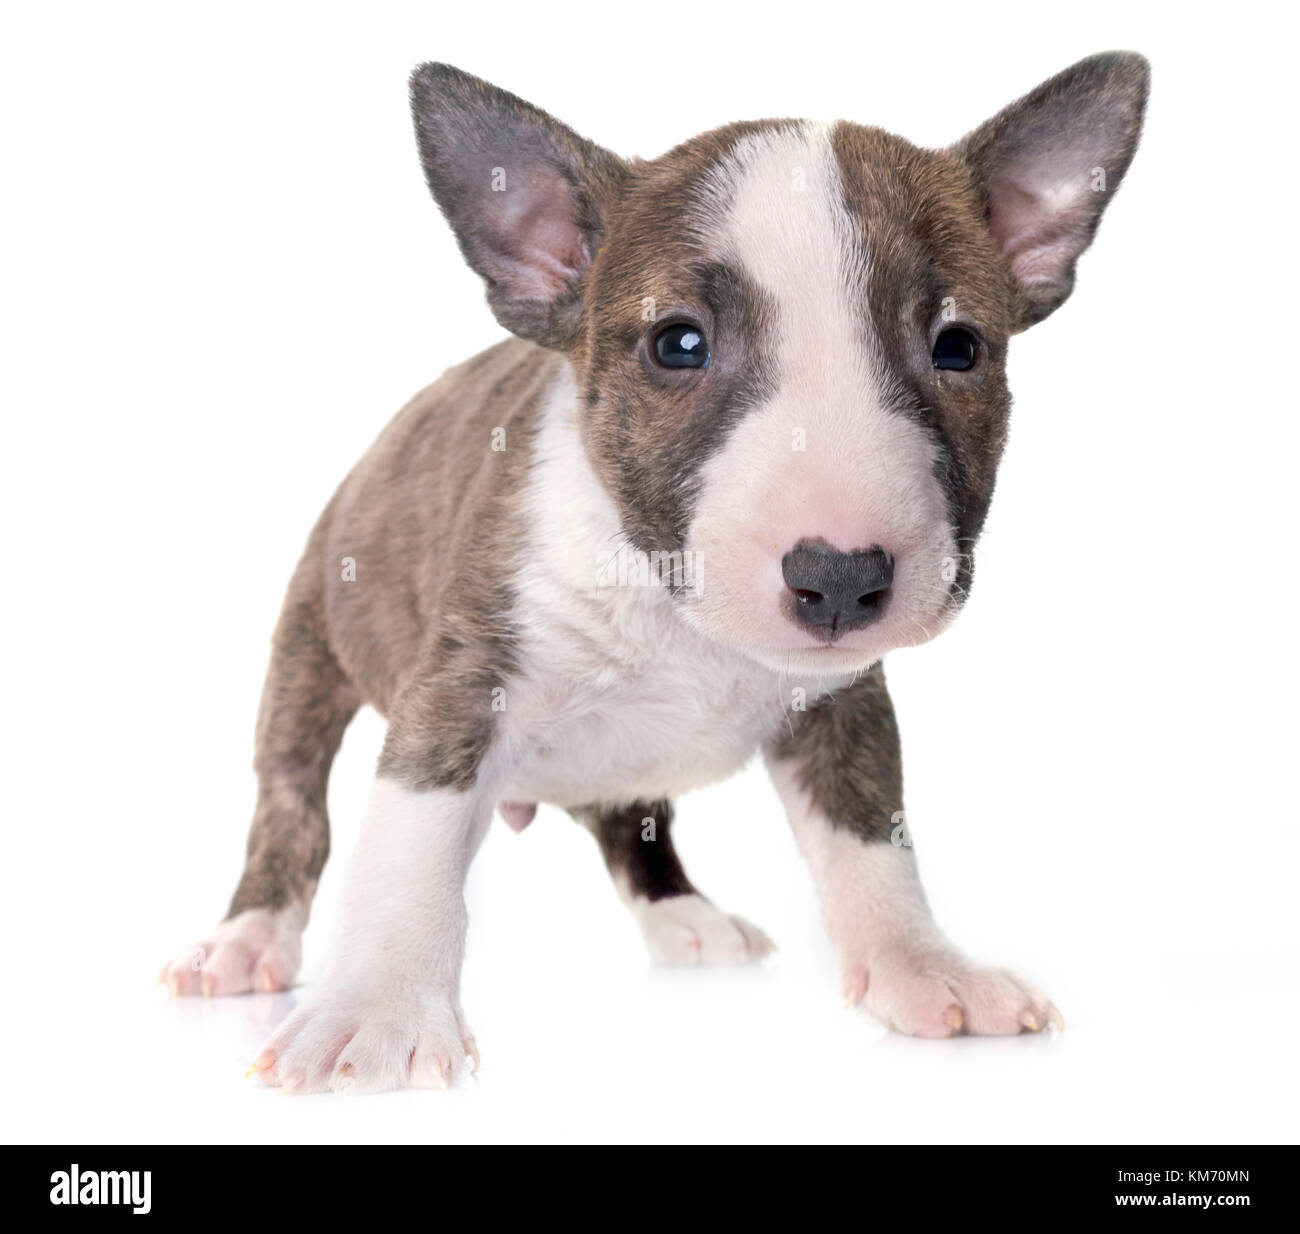 miniature bull terrier in front of white background - Stock Image